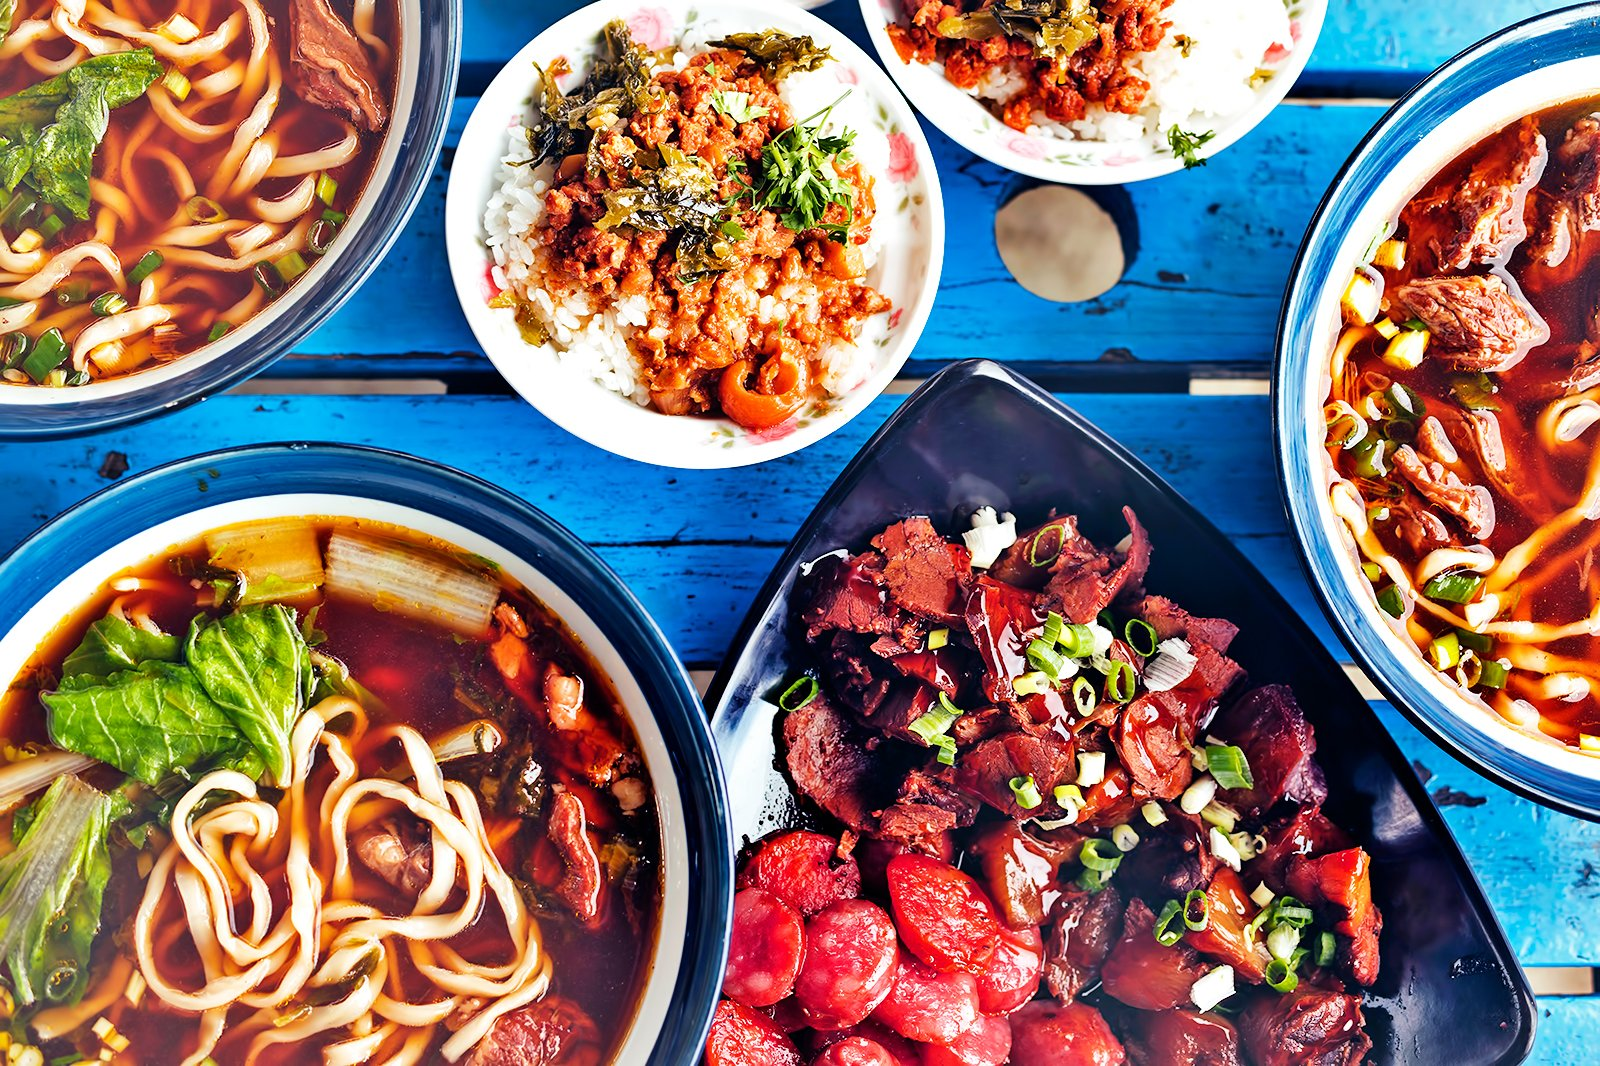 15 Best Taiwanese Foods & Dishes - What to Eat in Taiwan - Go Guides